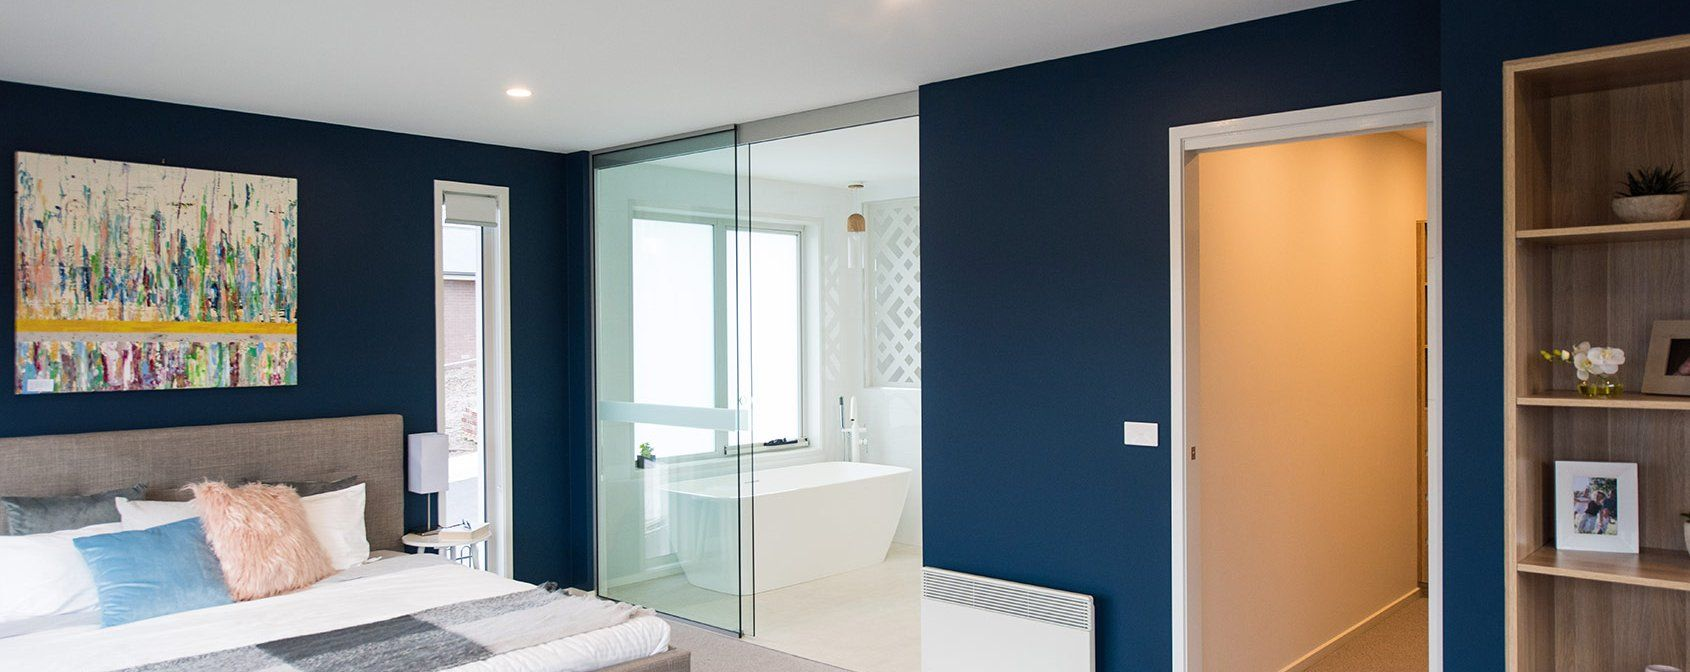 Bold in blue - Sapphire Home Design - On display at Kingston TAS #bluebedroom # & Bold in blue - Sapphire Home Design - On display at Kingston TAS ...